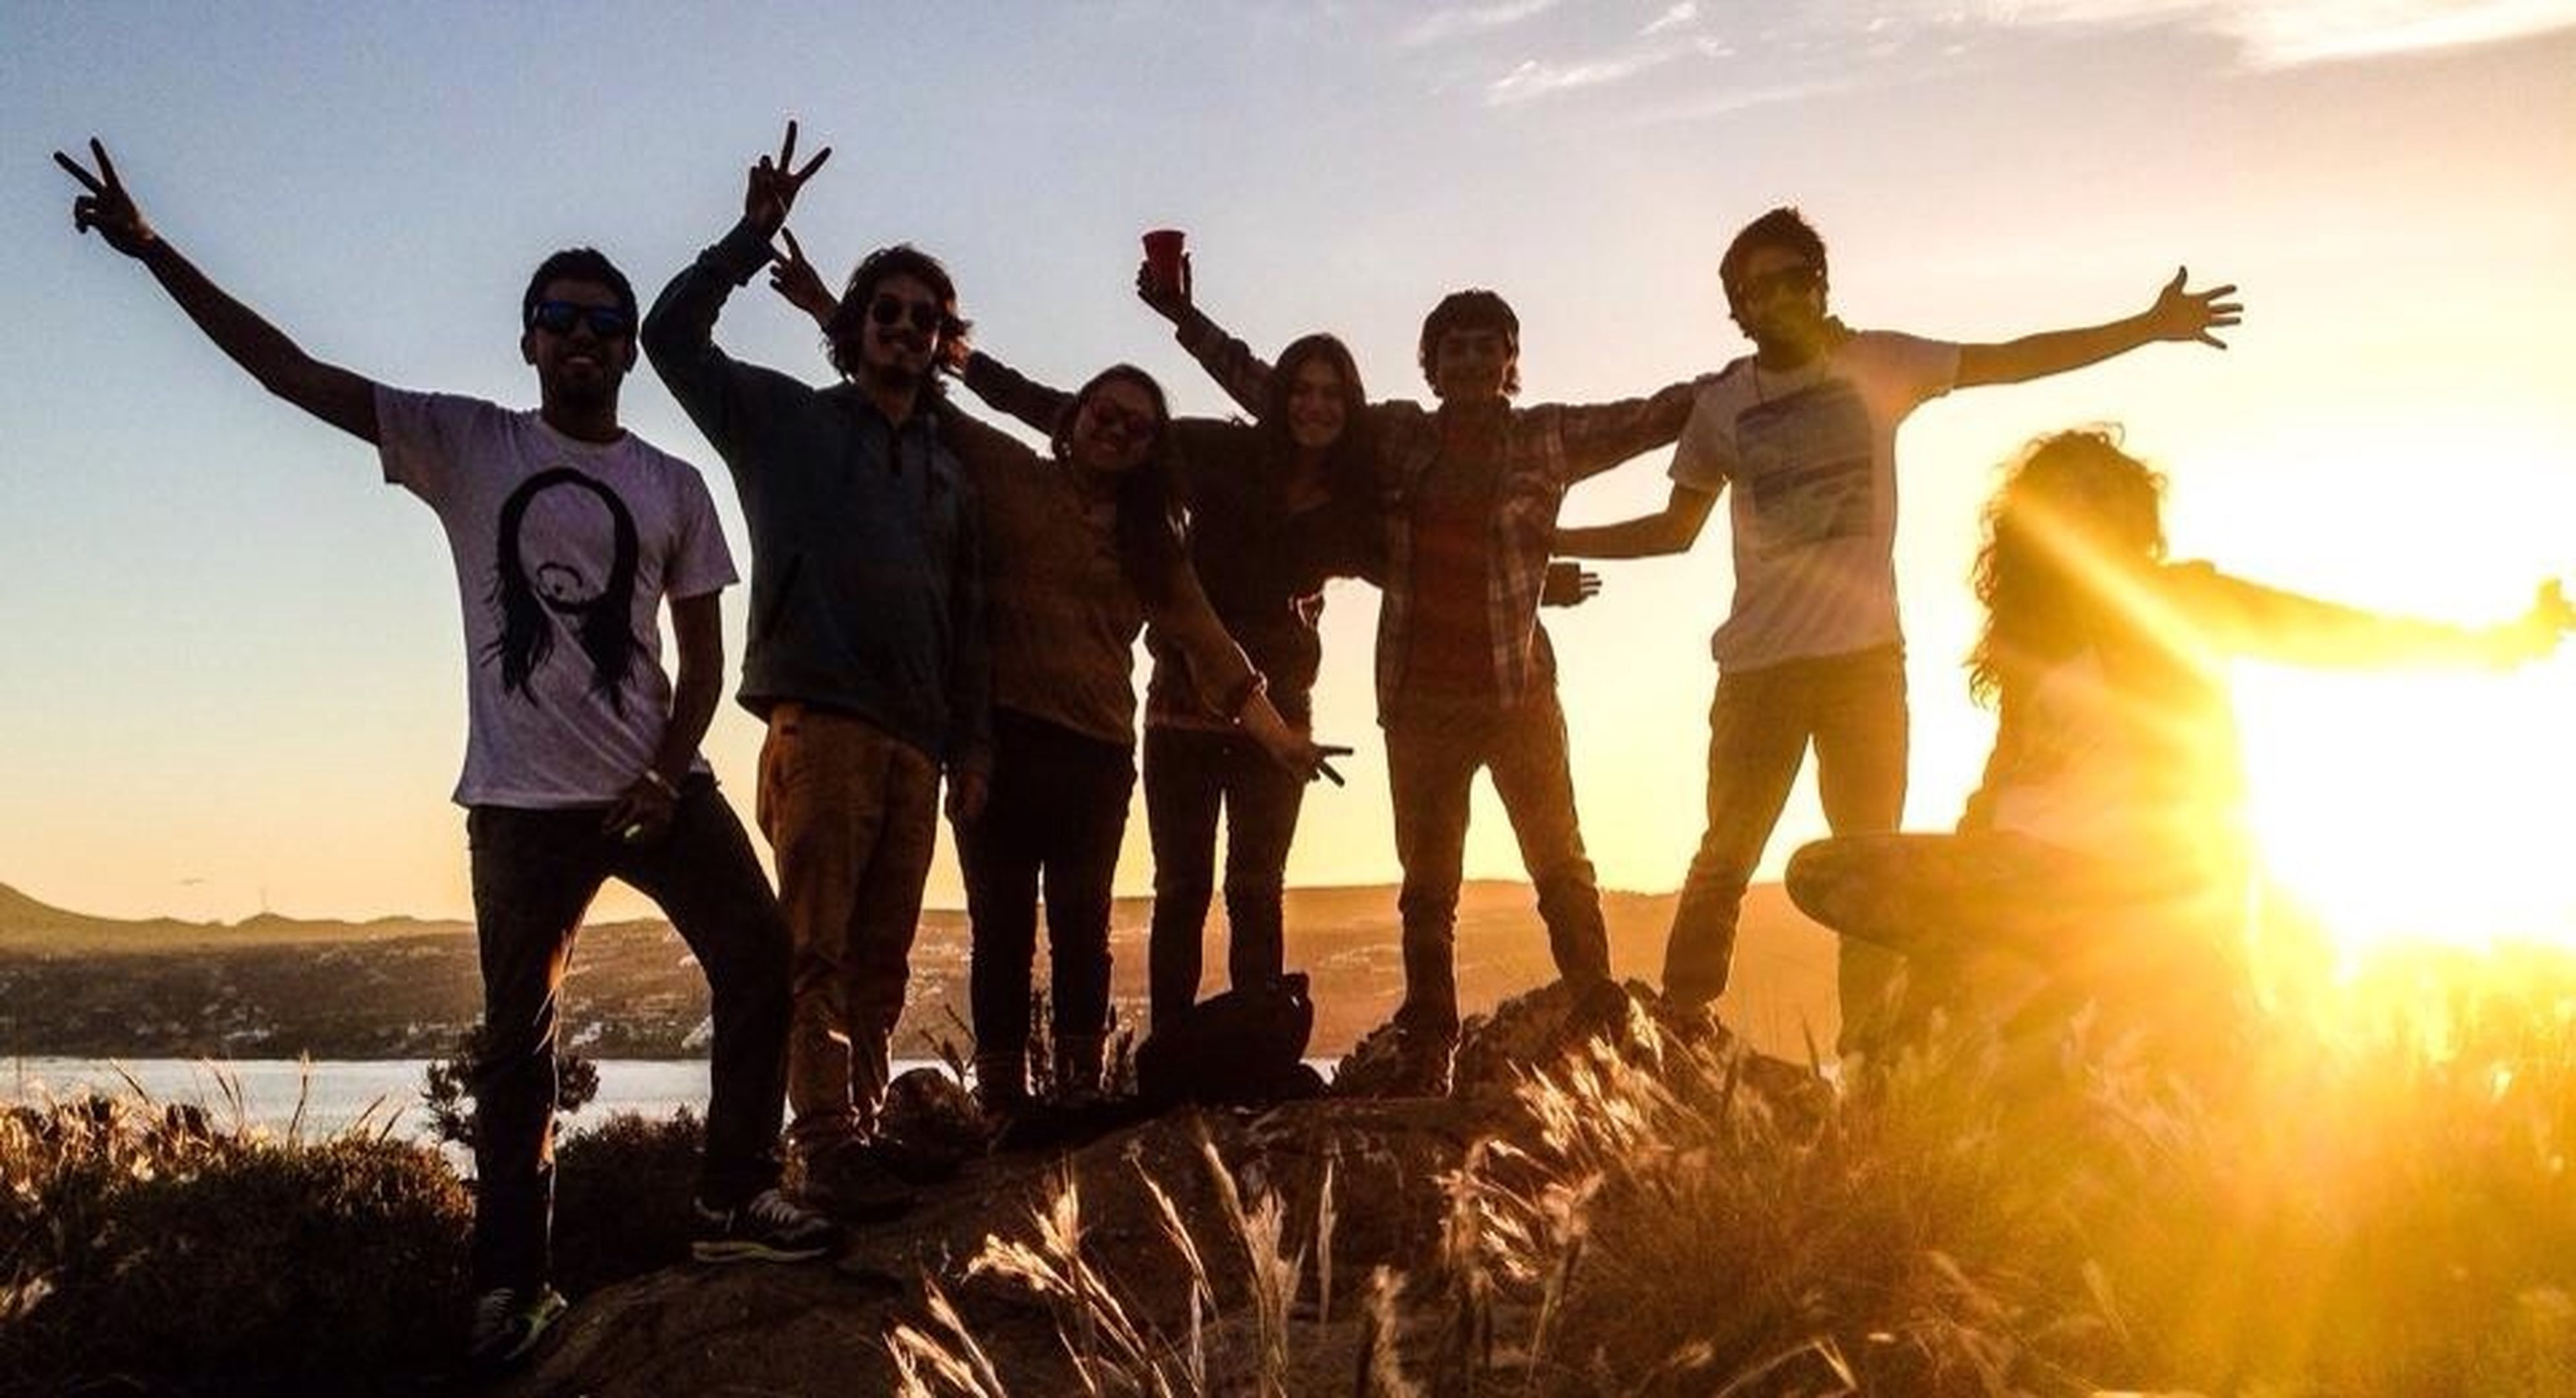 sun, sunset, togetherness, sunlight, lifestyles, men, sunbeam, leisure activity, sky, standing, lens flare, person, horse, full length, friendship, nature, outdoors, silhouette, vacations